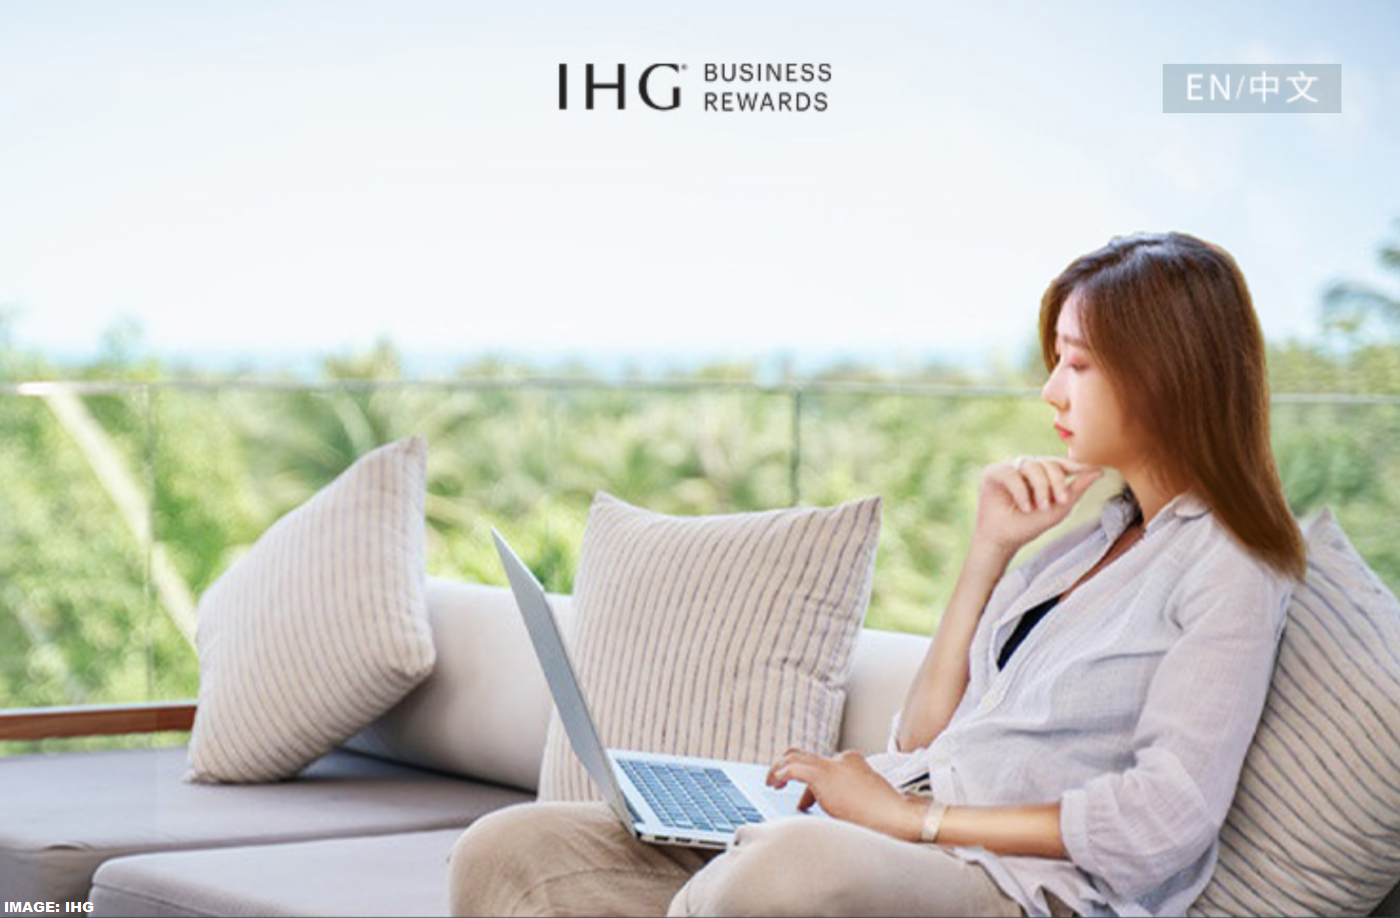 IHG Business Rewards Greater China Double Points Through December 31, 2021